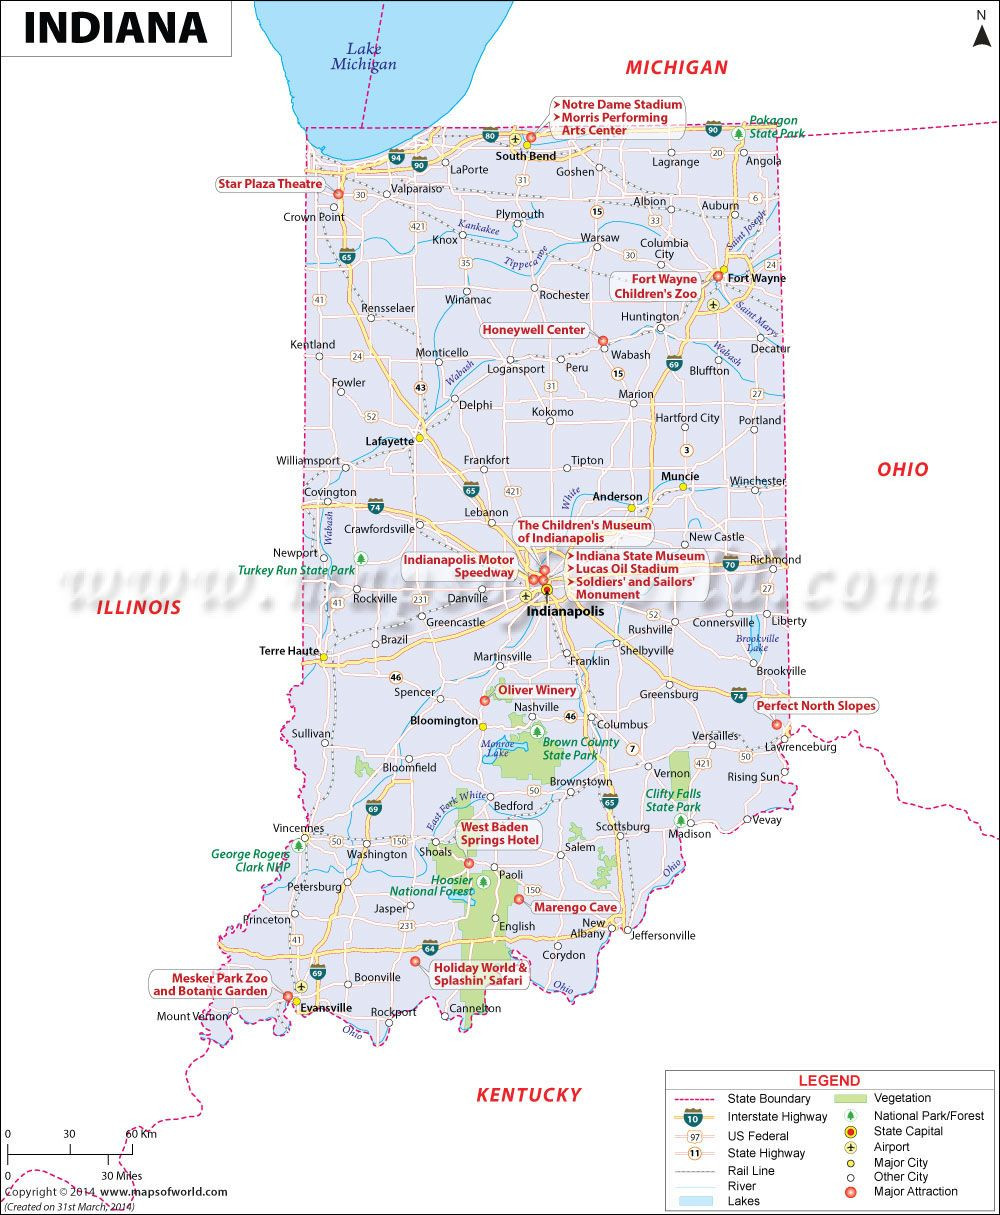 Indiana map showing the major travel attractions including cities